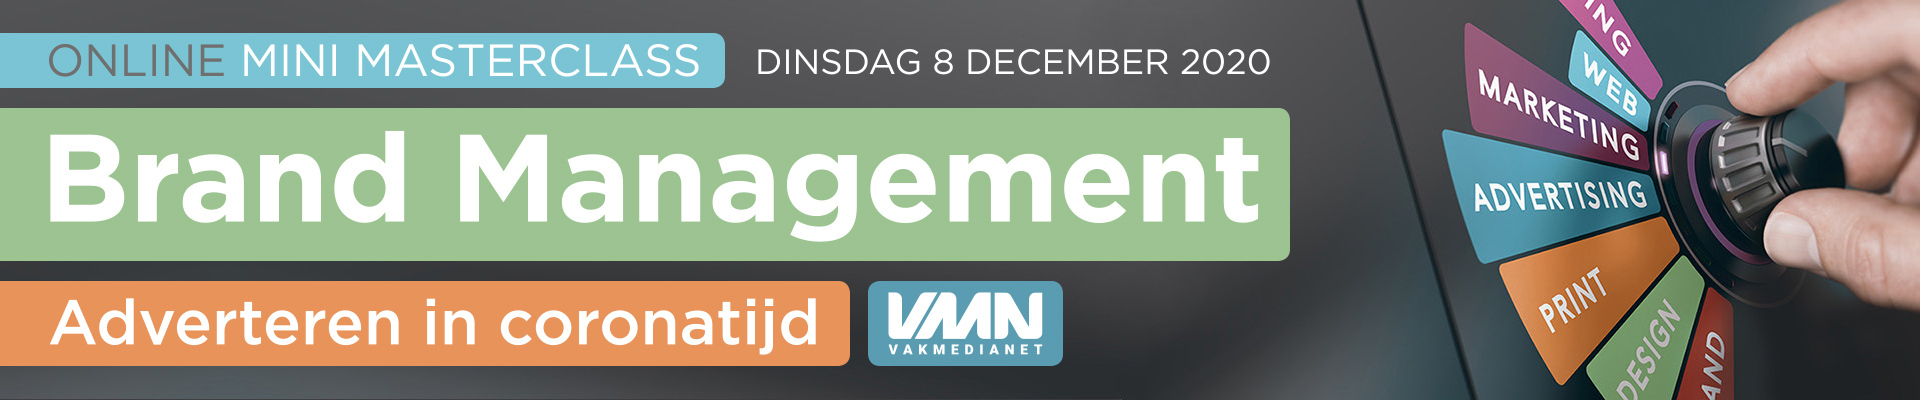 Mini Masterclass Brand Management 8 december 2020